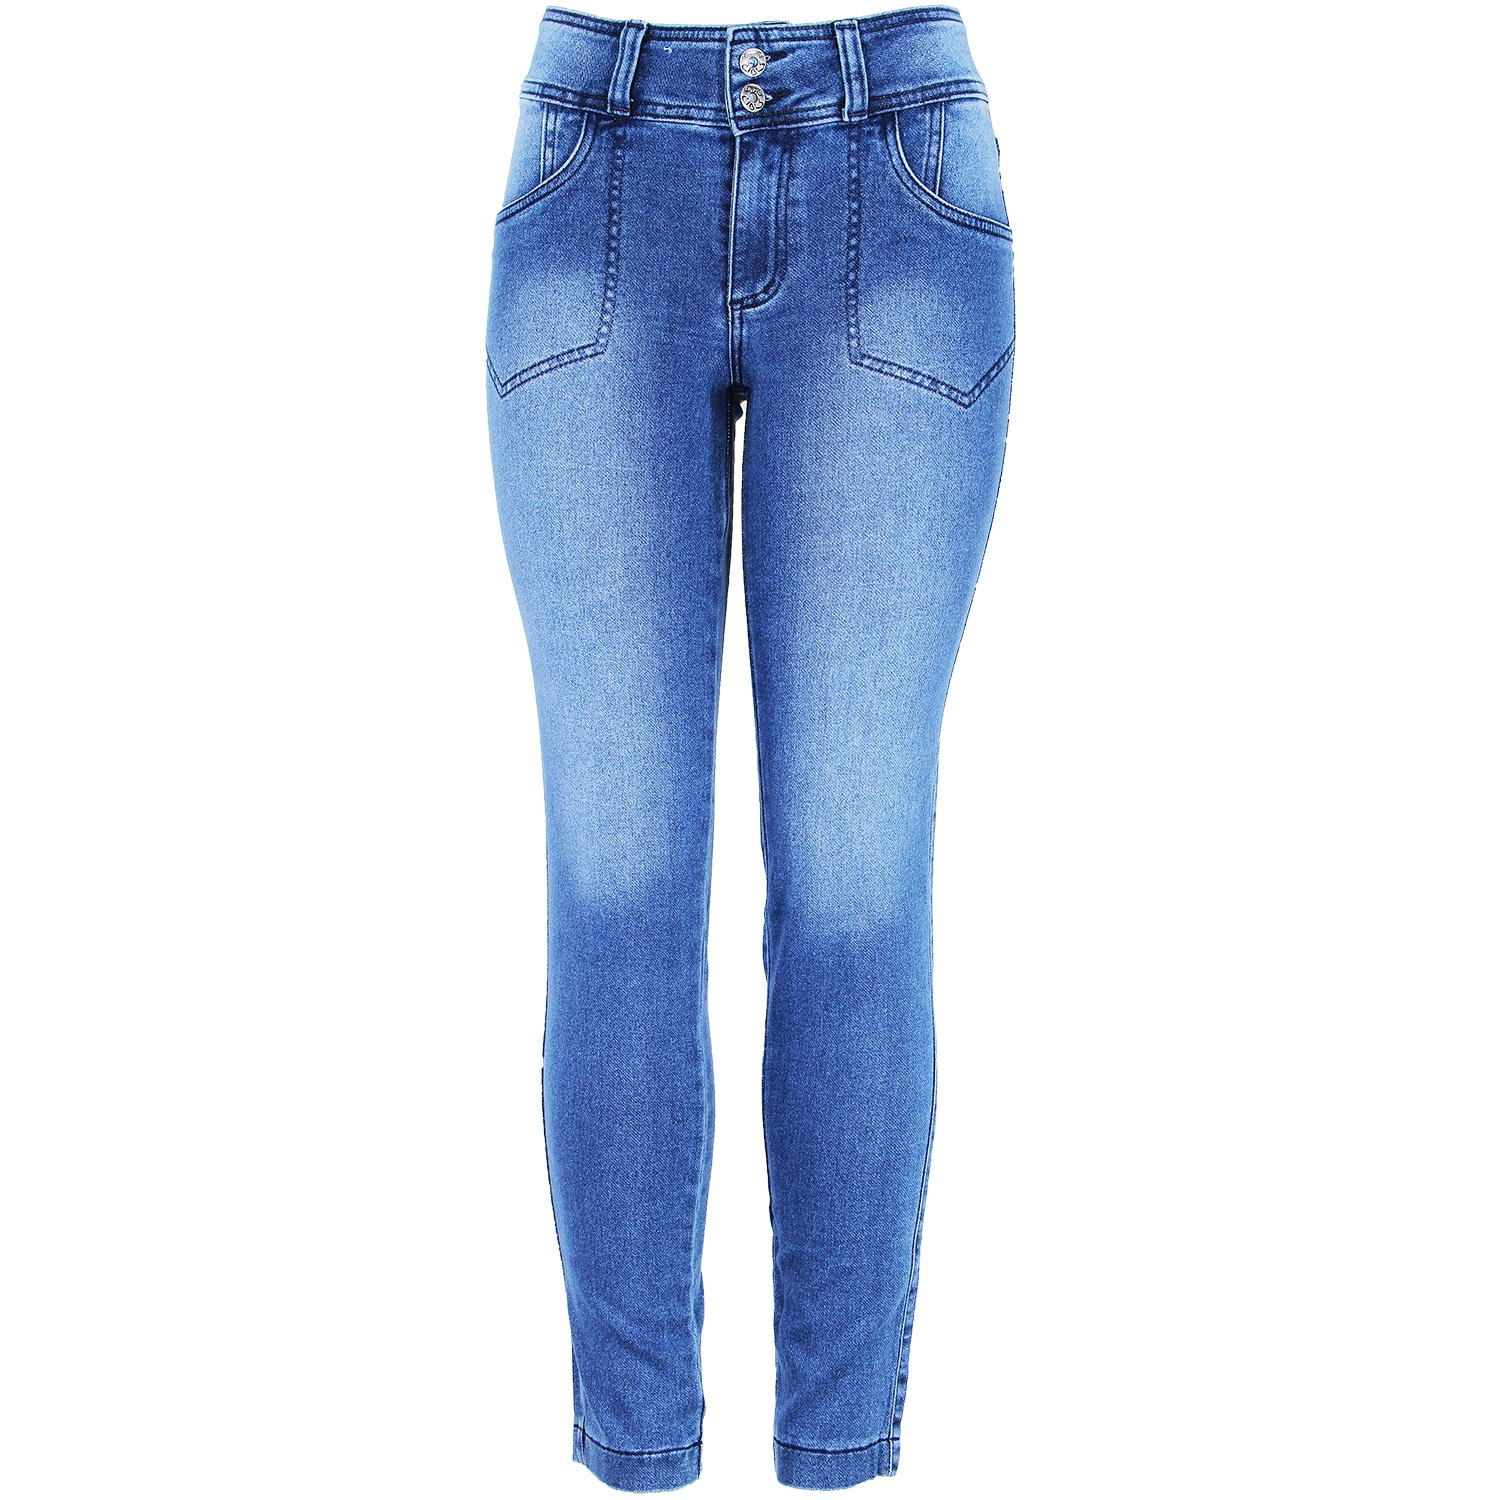 Cigarrete Eruption Jeans Squash Gentil [52224AM]